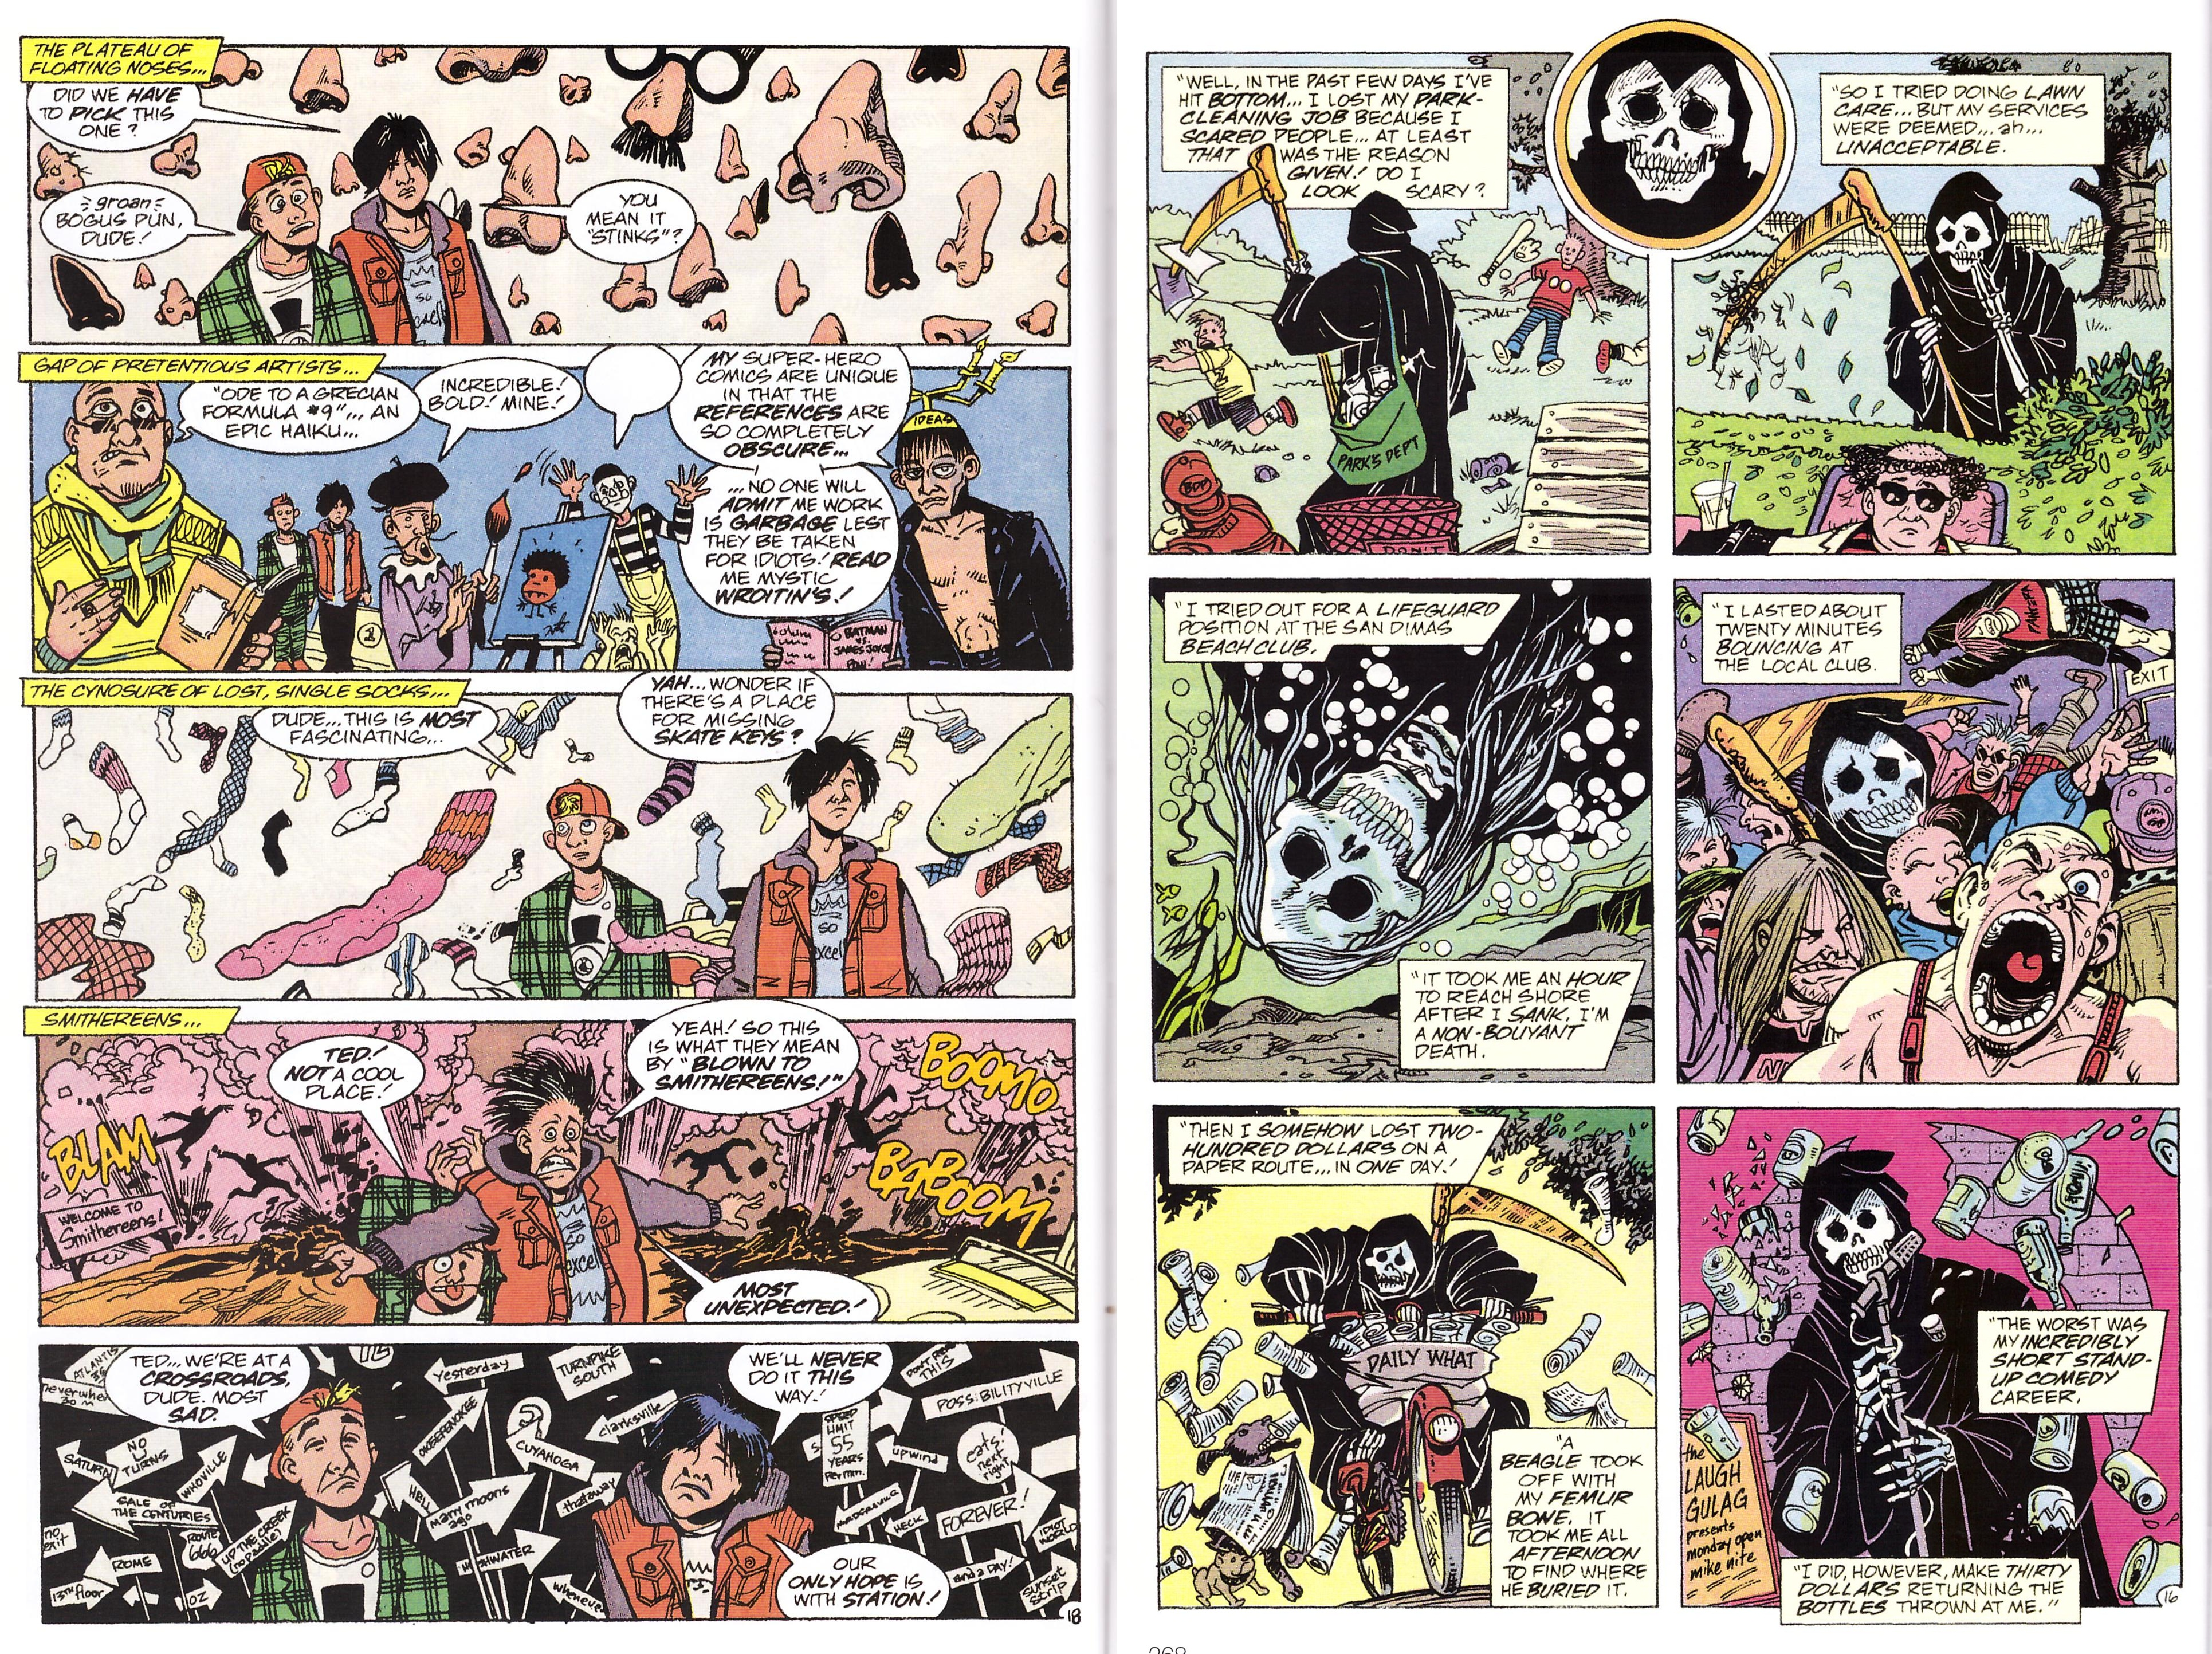 Bill and Ted's Excellent Comic Book Archive review